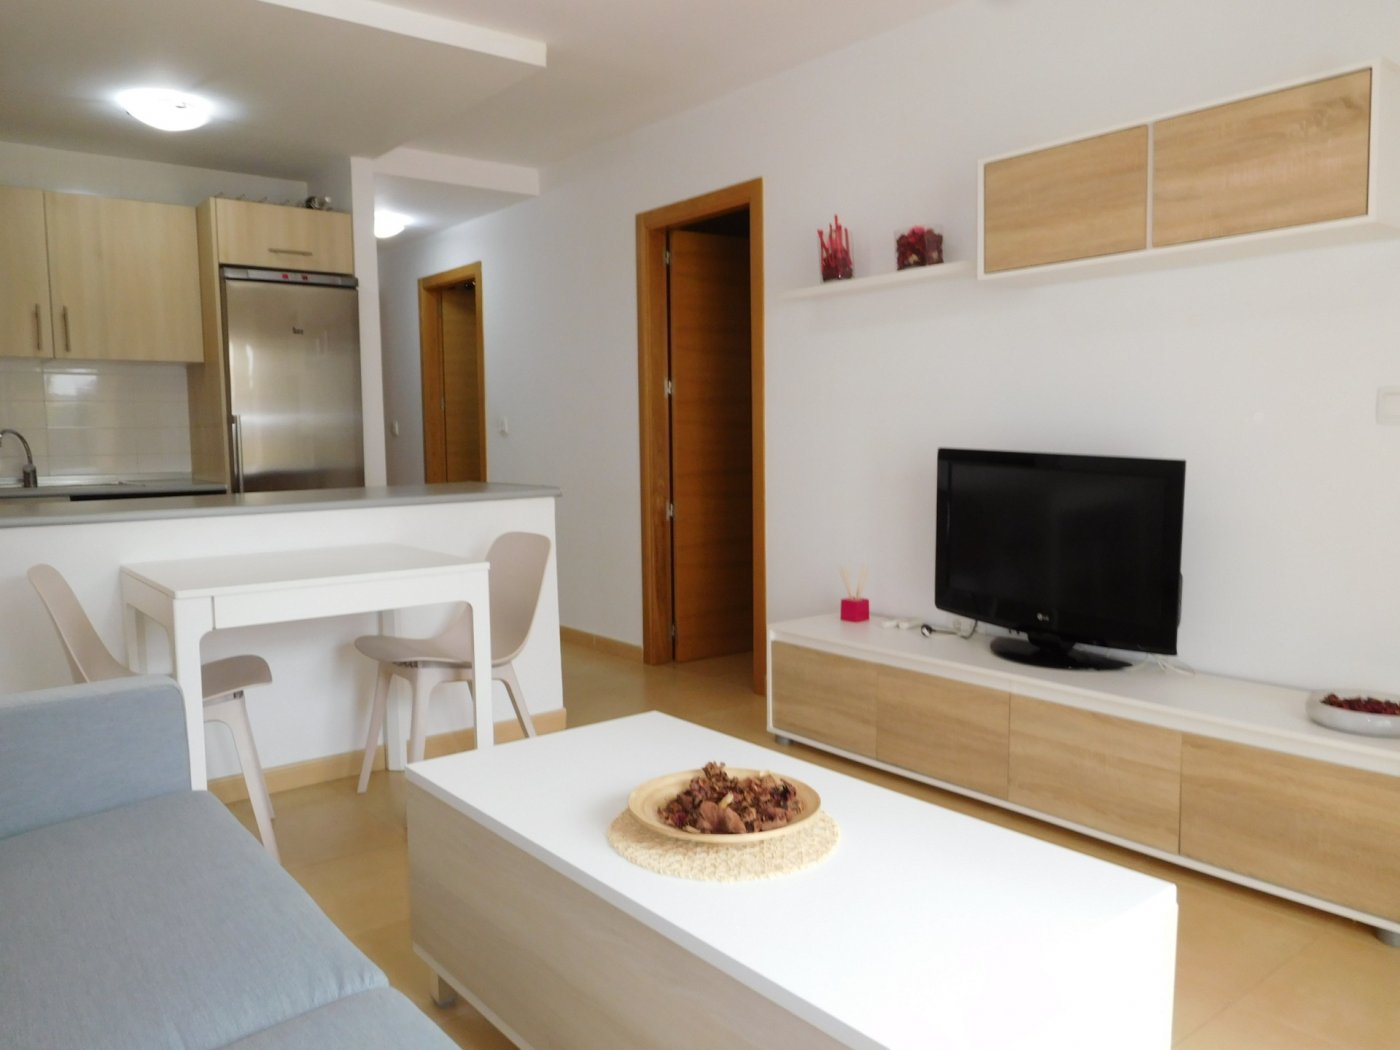 Gallery Image 3 of Flat For rent in Condado De Alhama, Alhama De Murcia With Pool